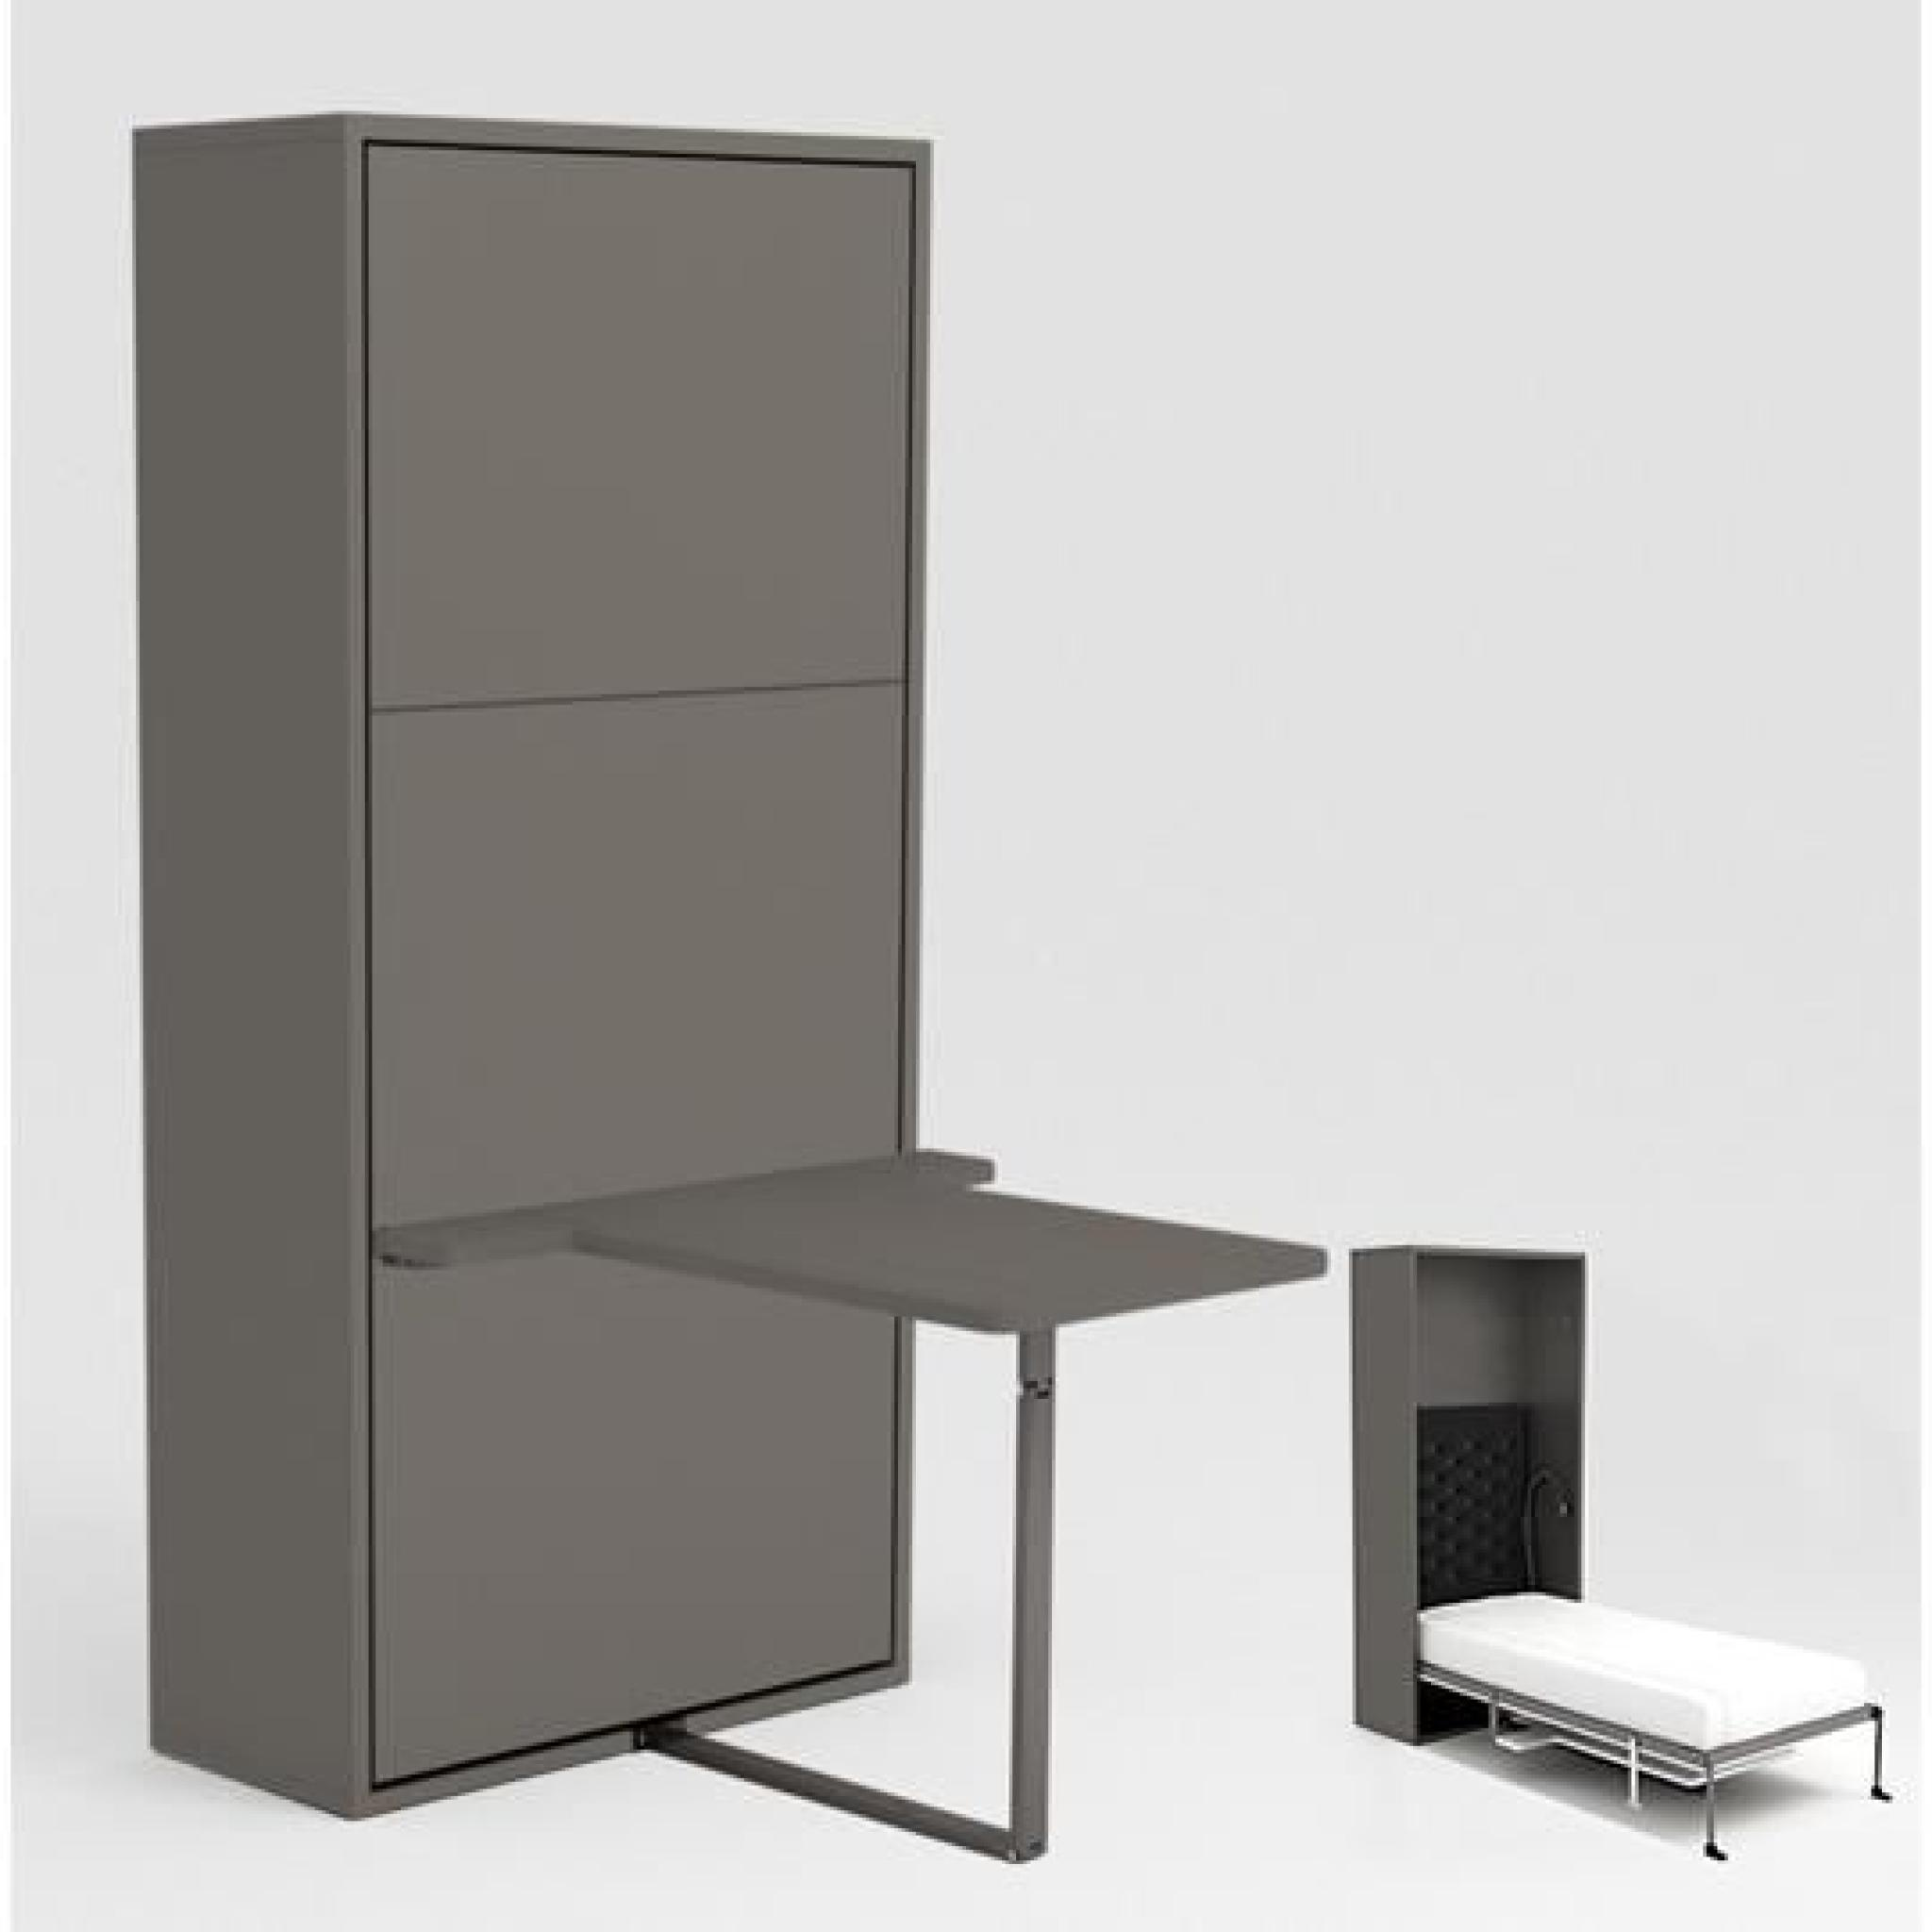 armoire lit escamotable stone 90x200 gris bureau achat. Black Bedroom Furniture Sets. Home Design Ideas